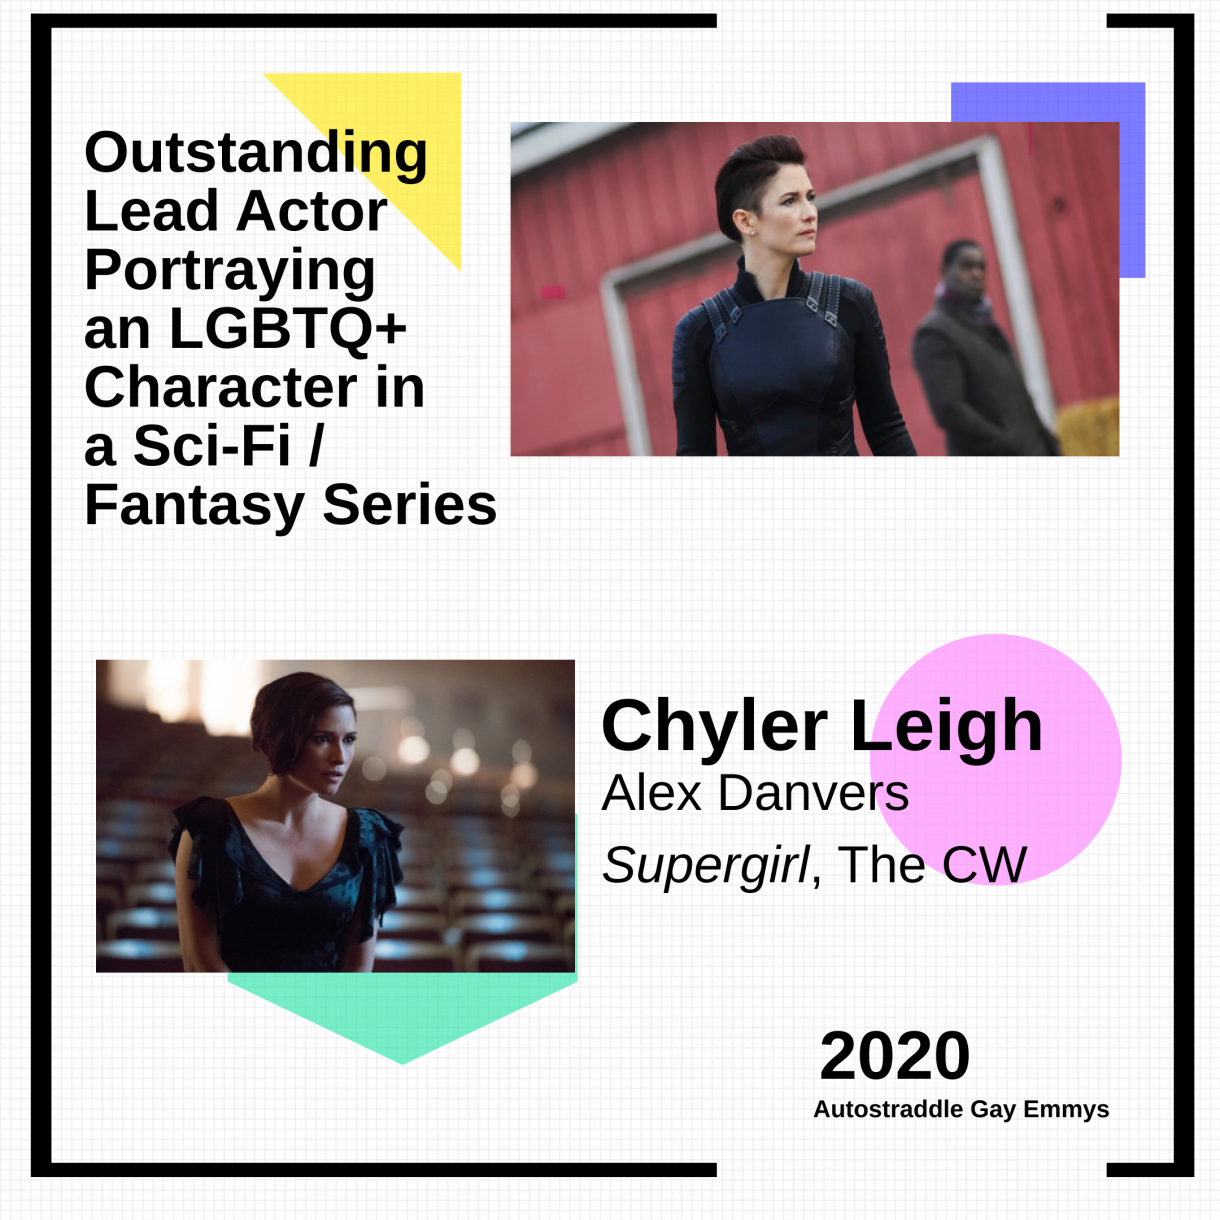 Outstanding Lead Actor Playing an LGBTQ+ Character in a Sci-Fi/Fantasy Series: Chyler Leigh as Alex Danvers, Supergirl. Two pictures of Alex Danvers with short hair looking badass.